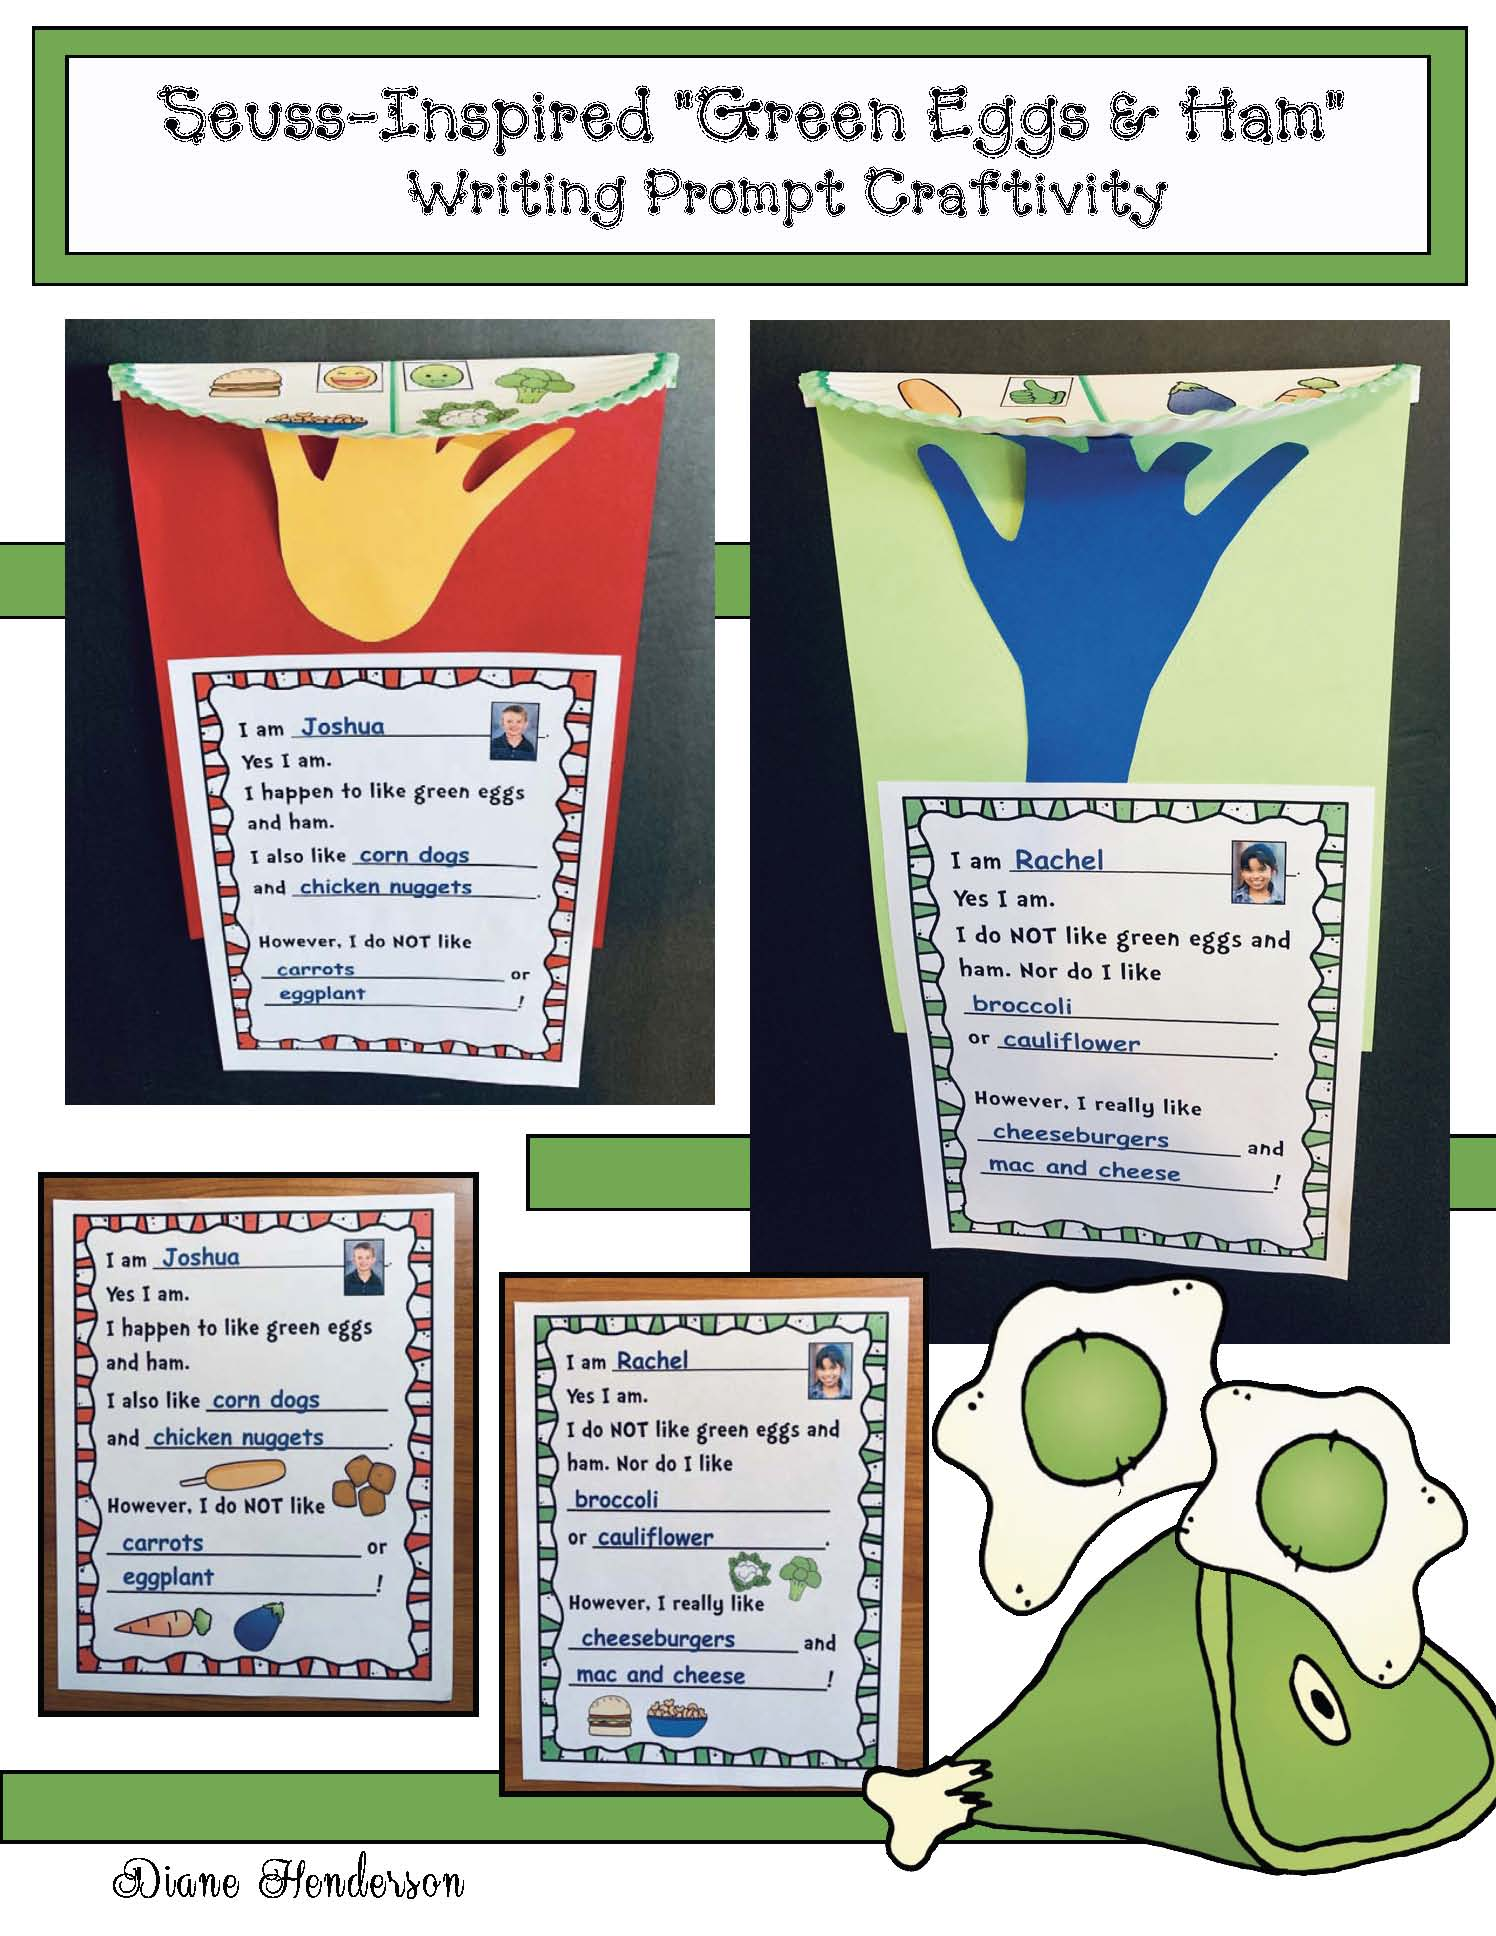 dr. seuss activities, dr. seuss crafts, green eggs and ham activities, green eggs and ham crafts, march writing prompts, read across america bulletin boards, seuss bulletin boards, seuss writing prompts